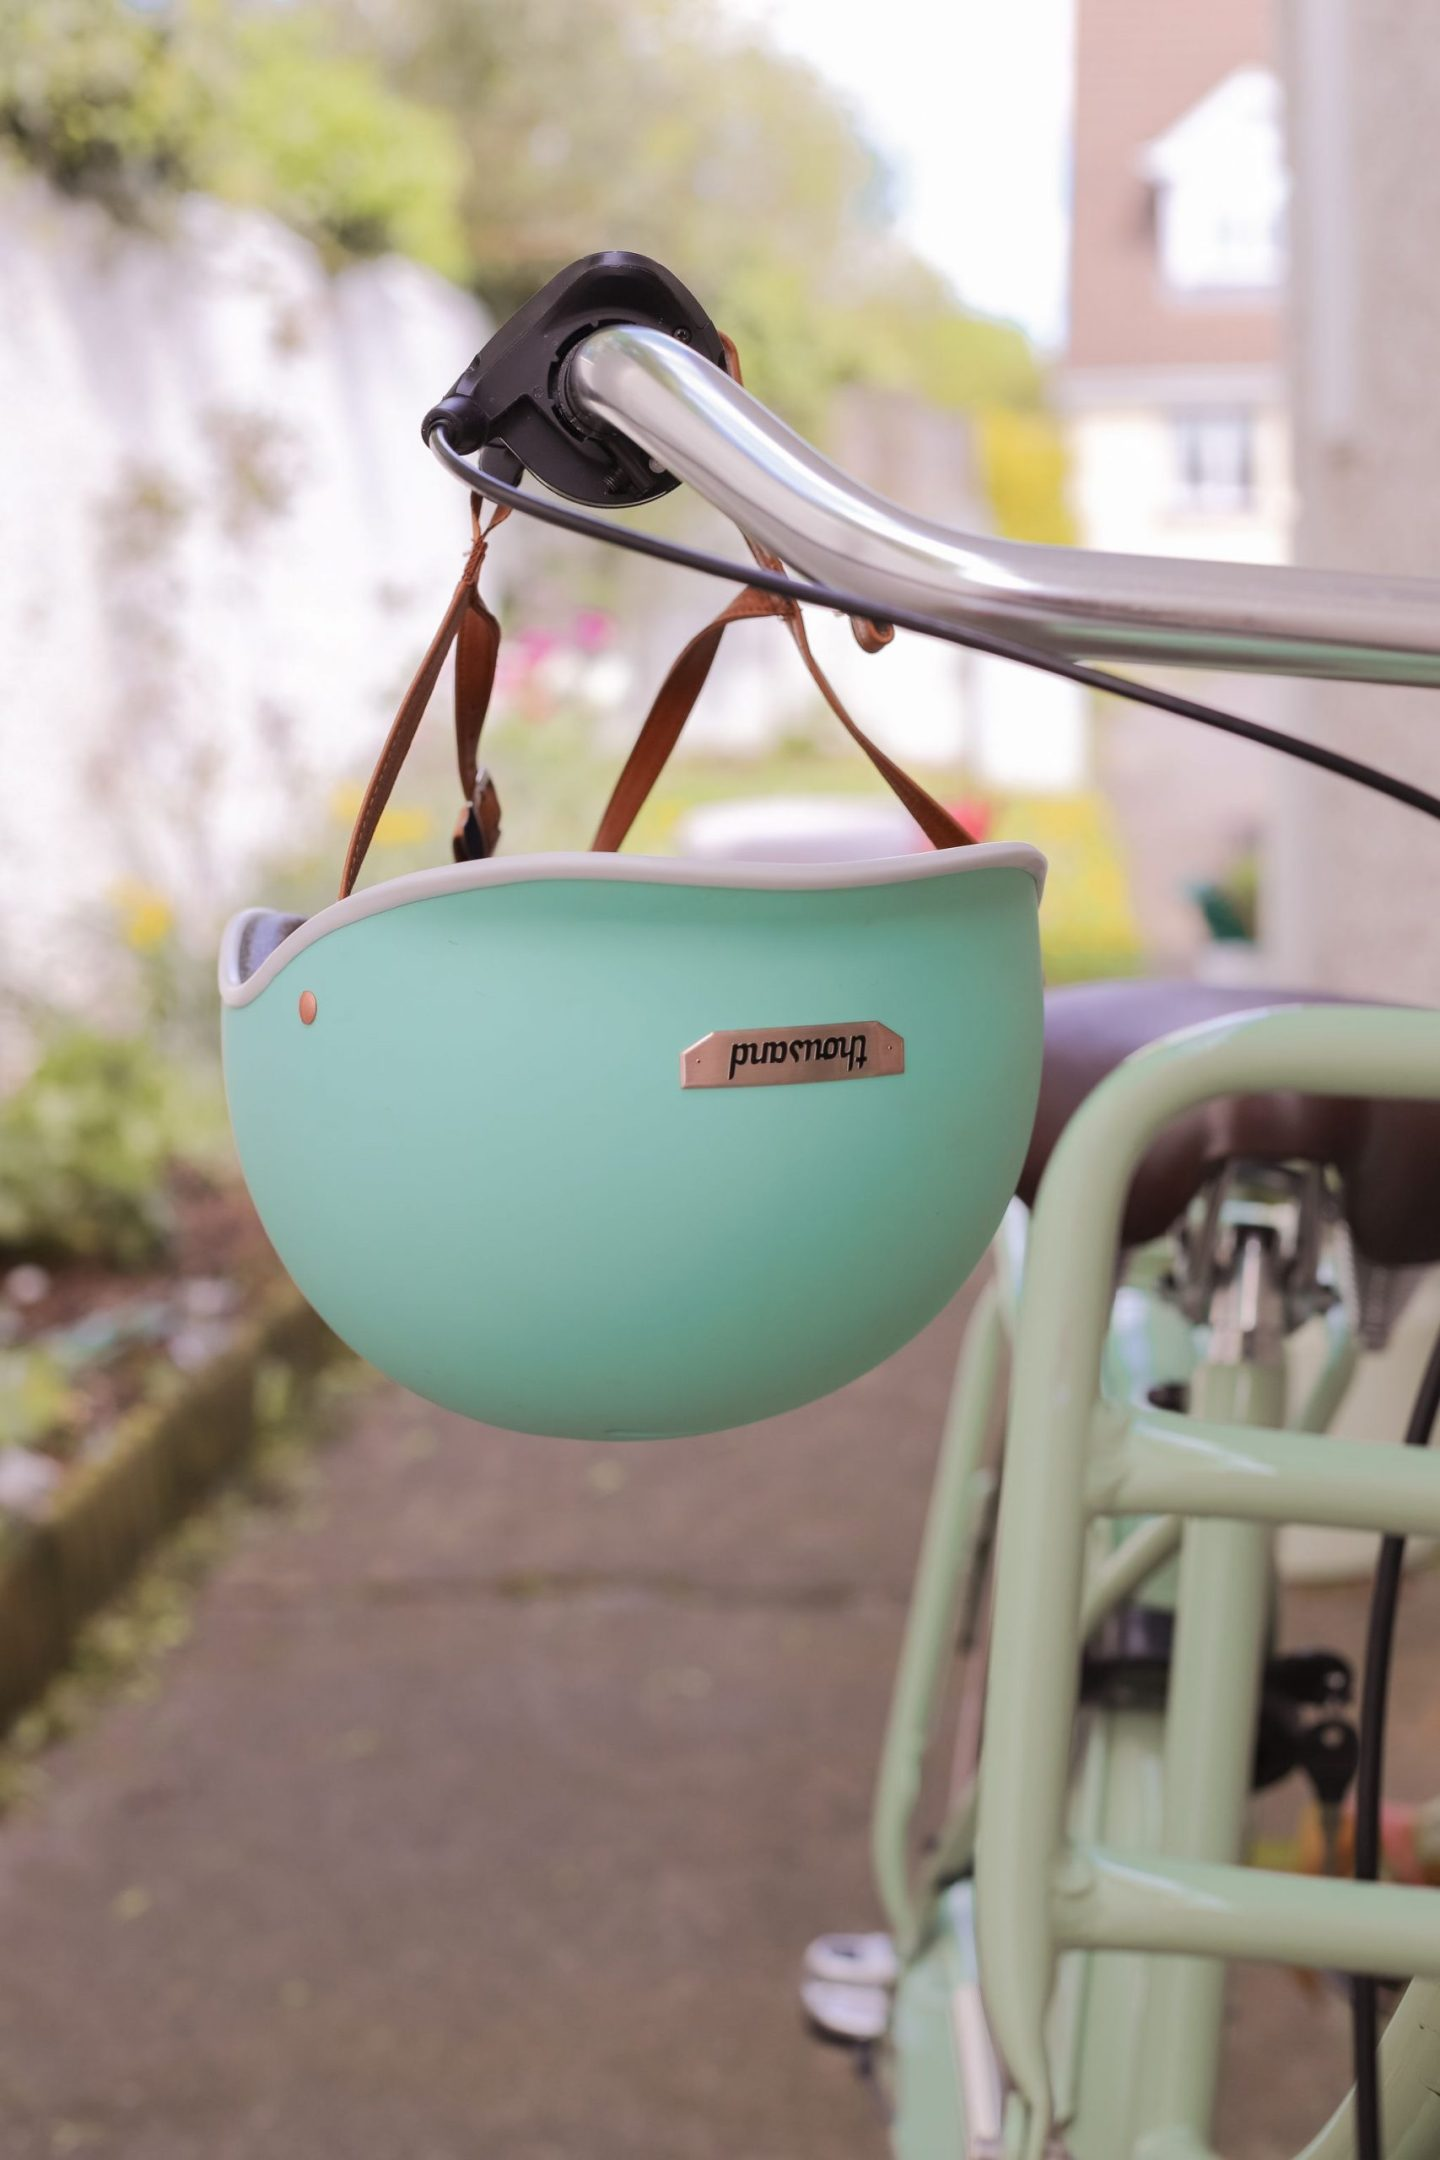 The cutest bike accessories